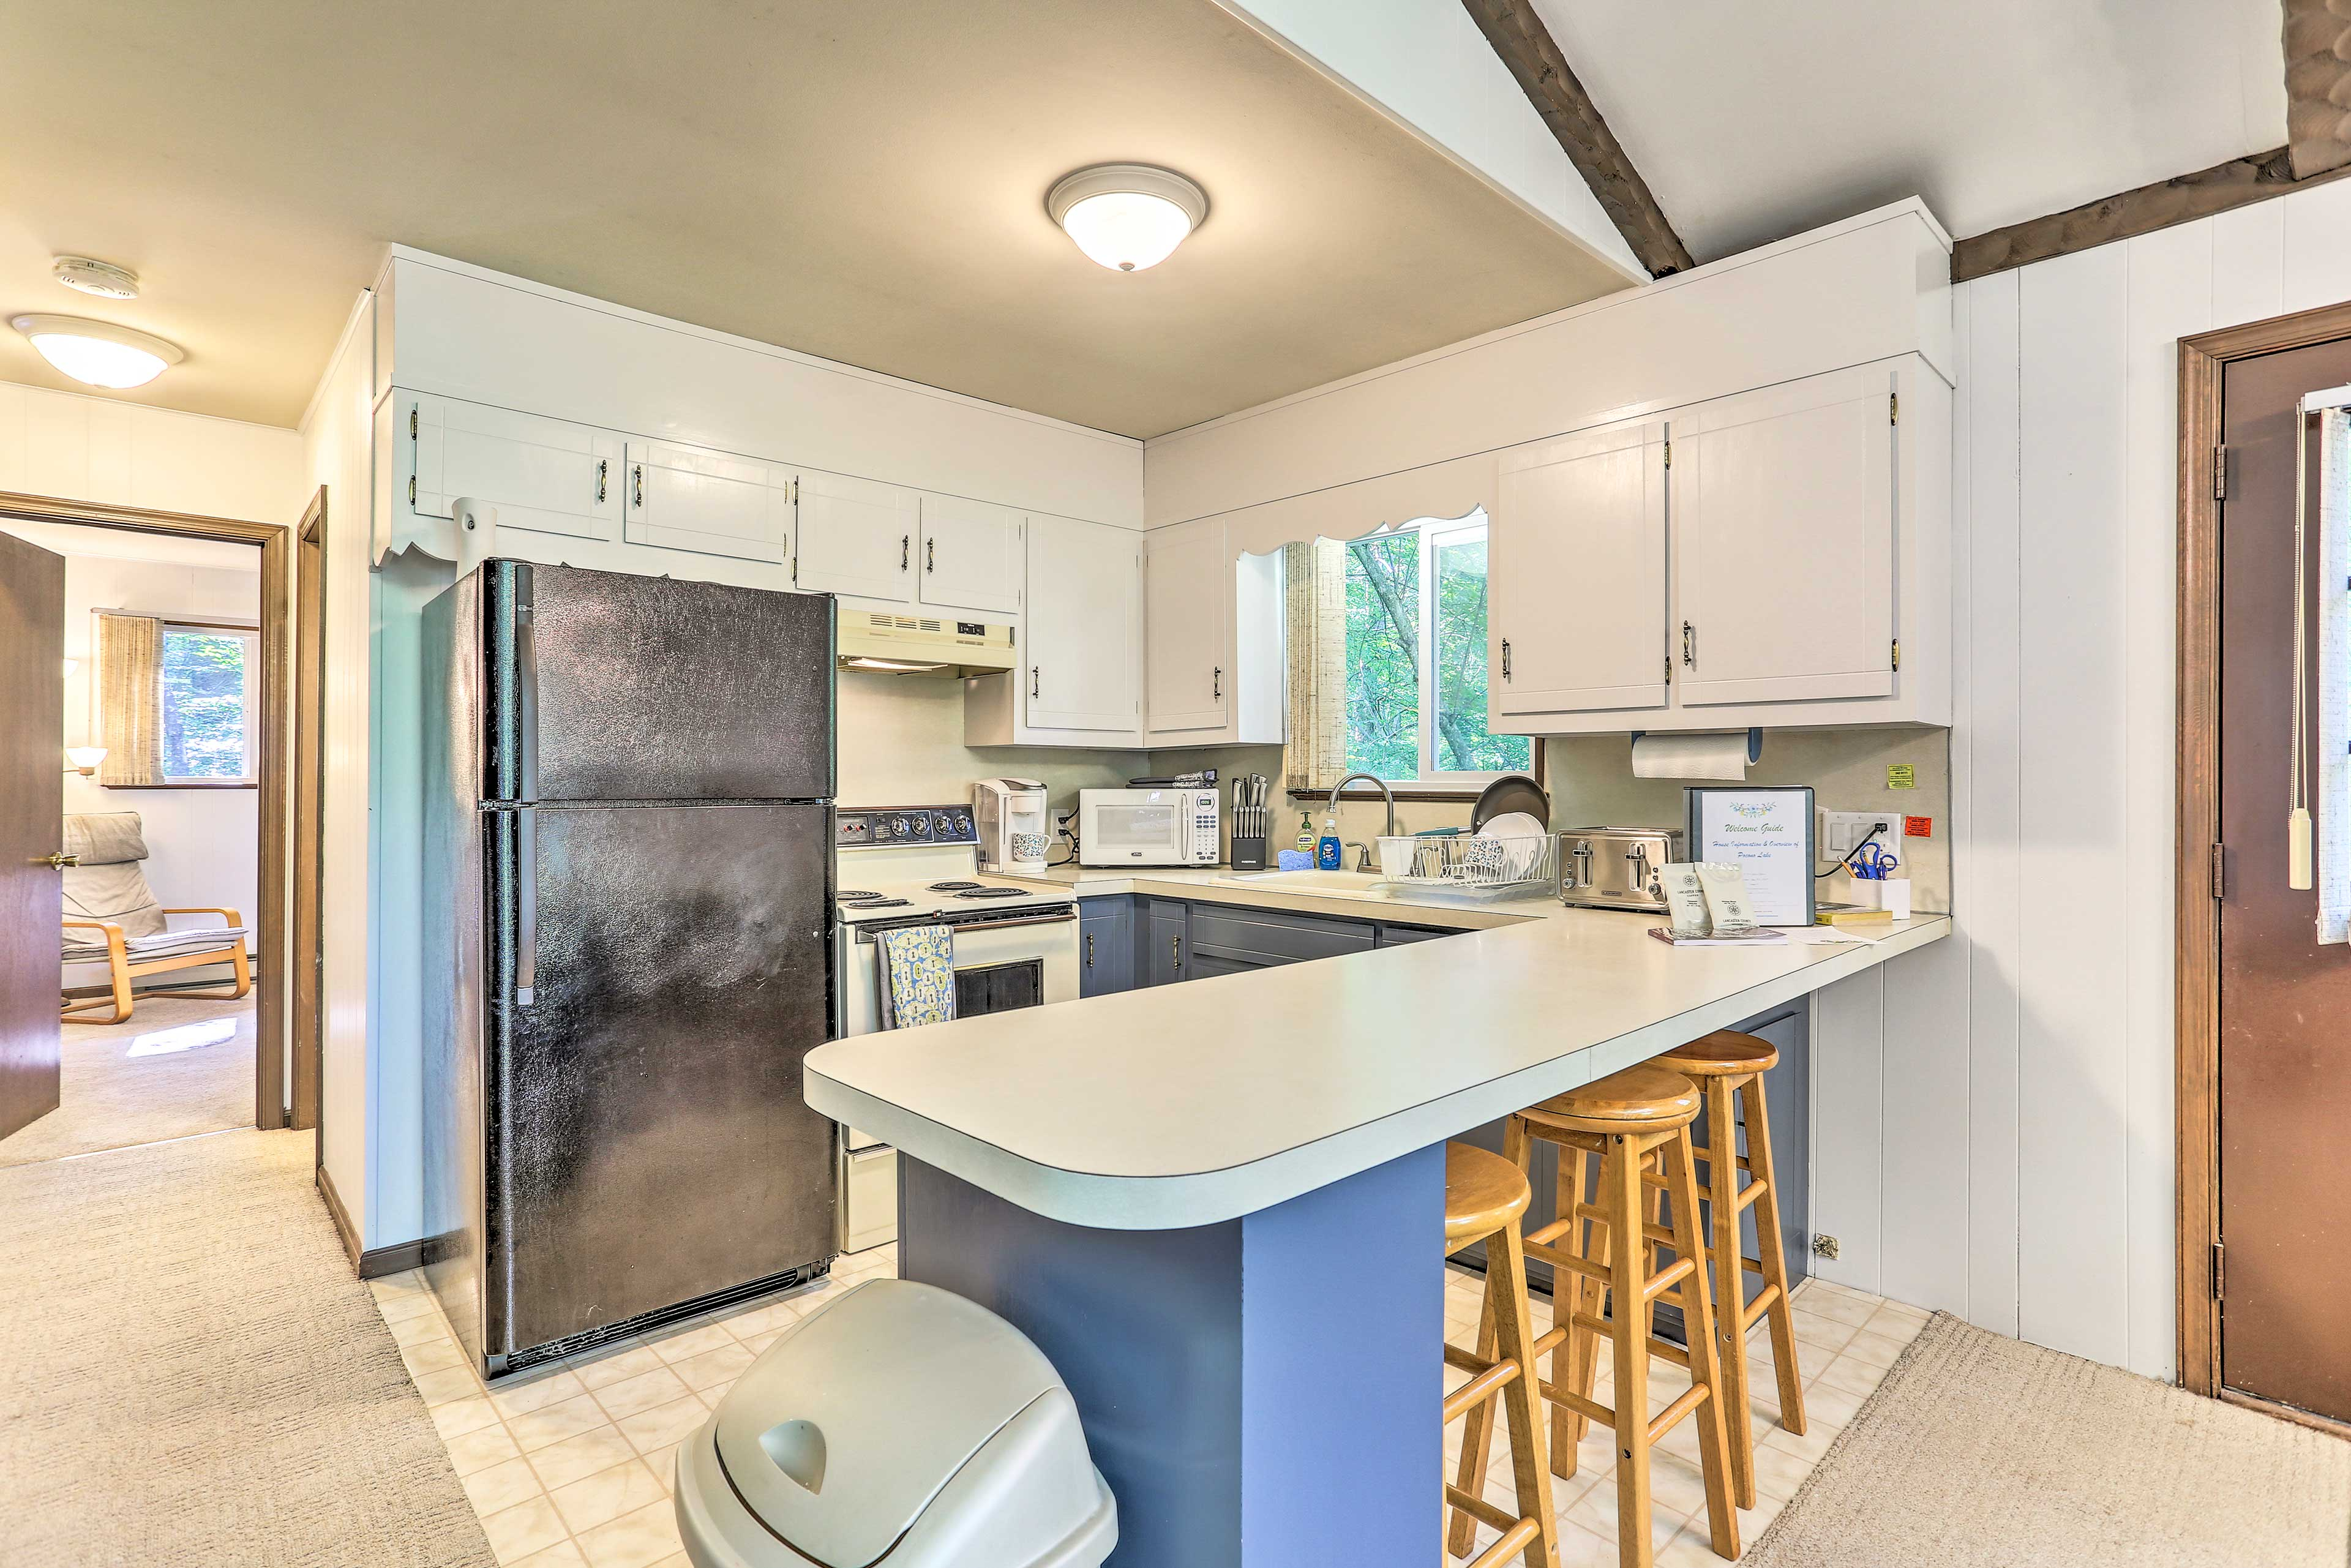 Kitchen | Fully Equipped | Cooking Essentials